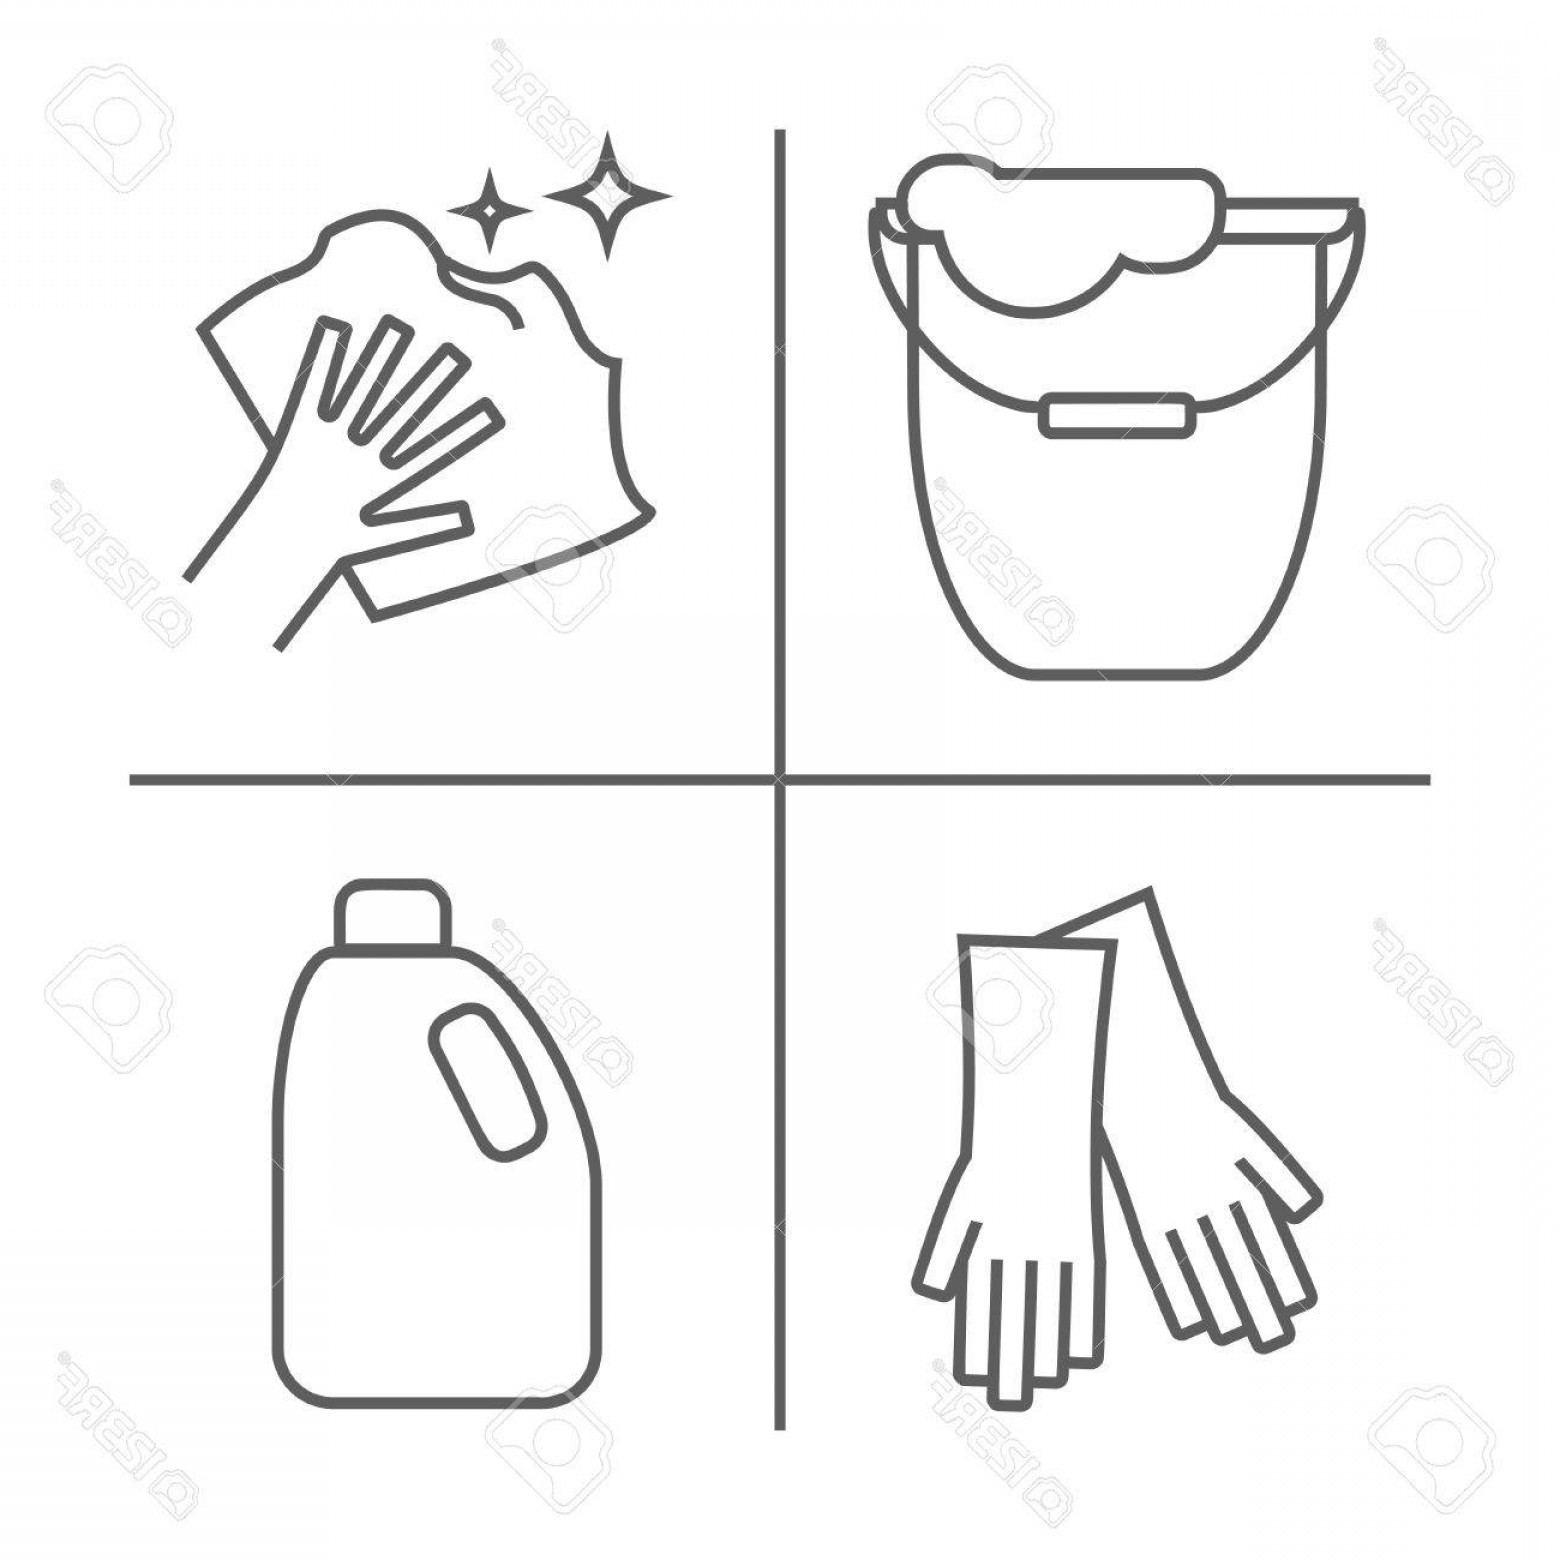 White Glove Service Vector: Photostock Vector Cleaning The Floor Line Icons A Bucket For Washing The Floor A Floorcloth Gloves And Other Cleaning